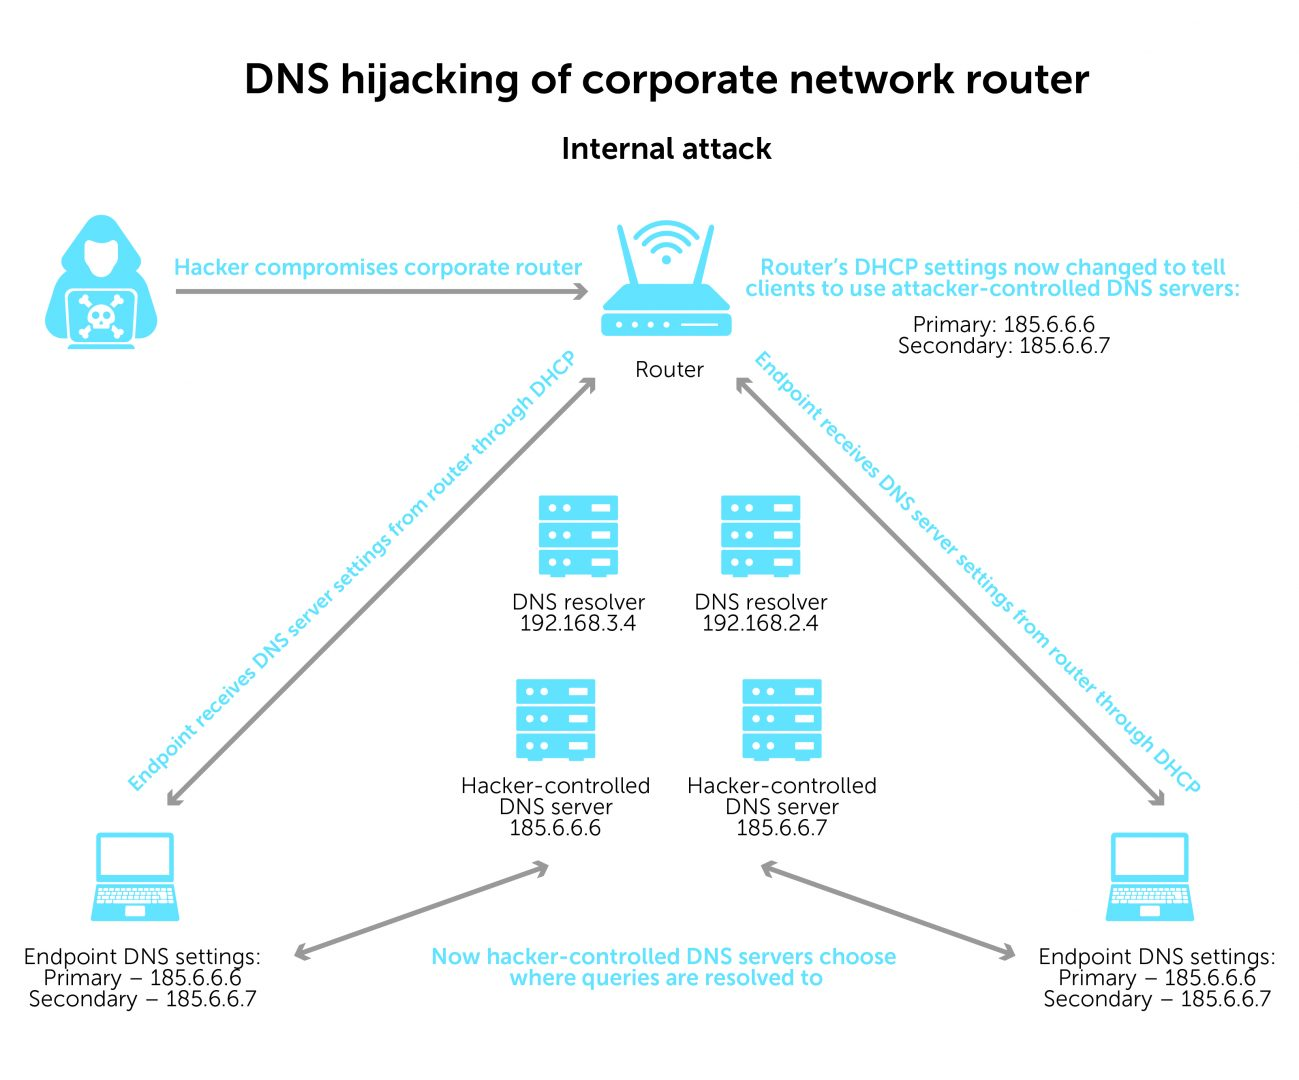 DNS hijacking of corporate network router - internal attack